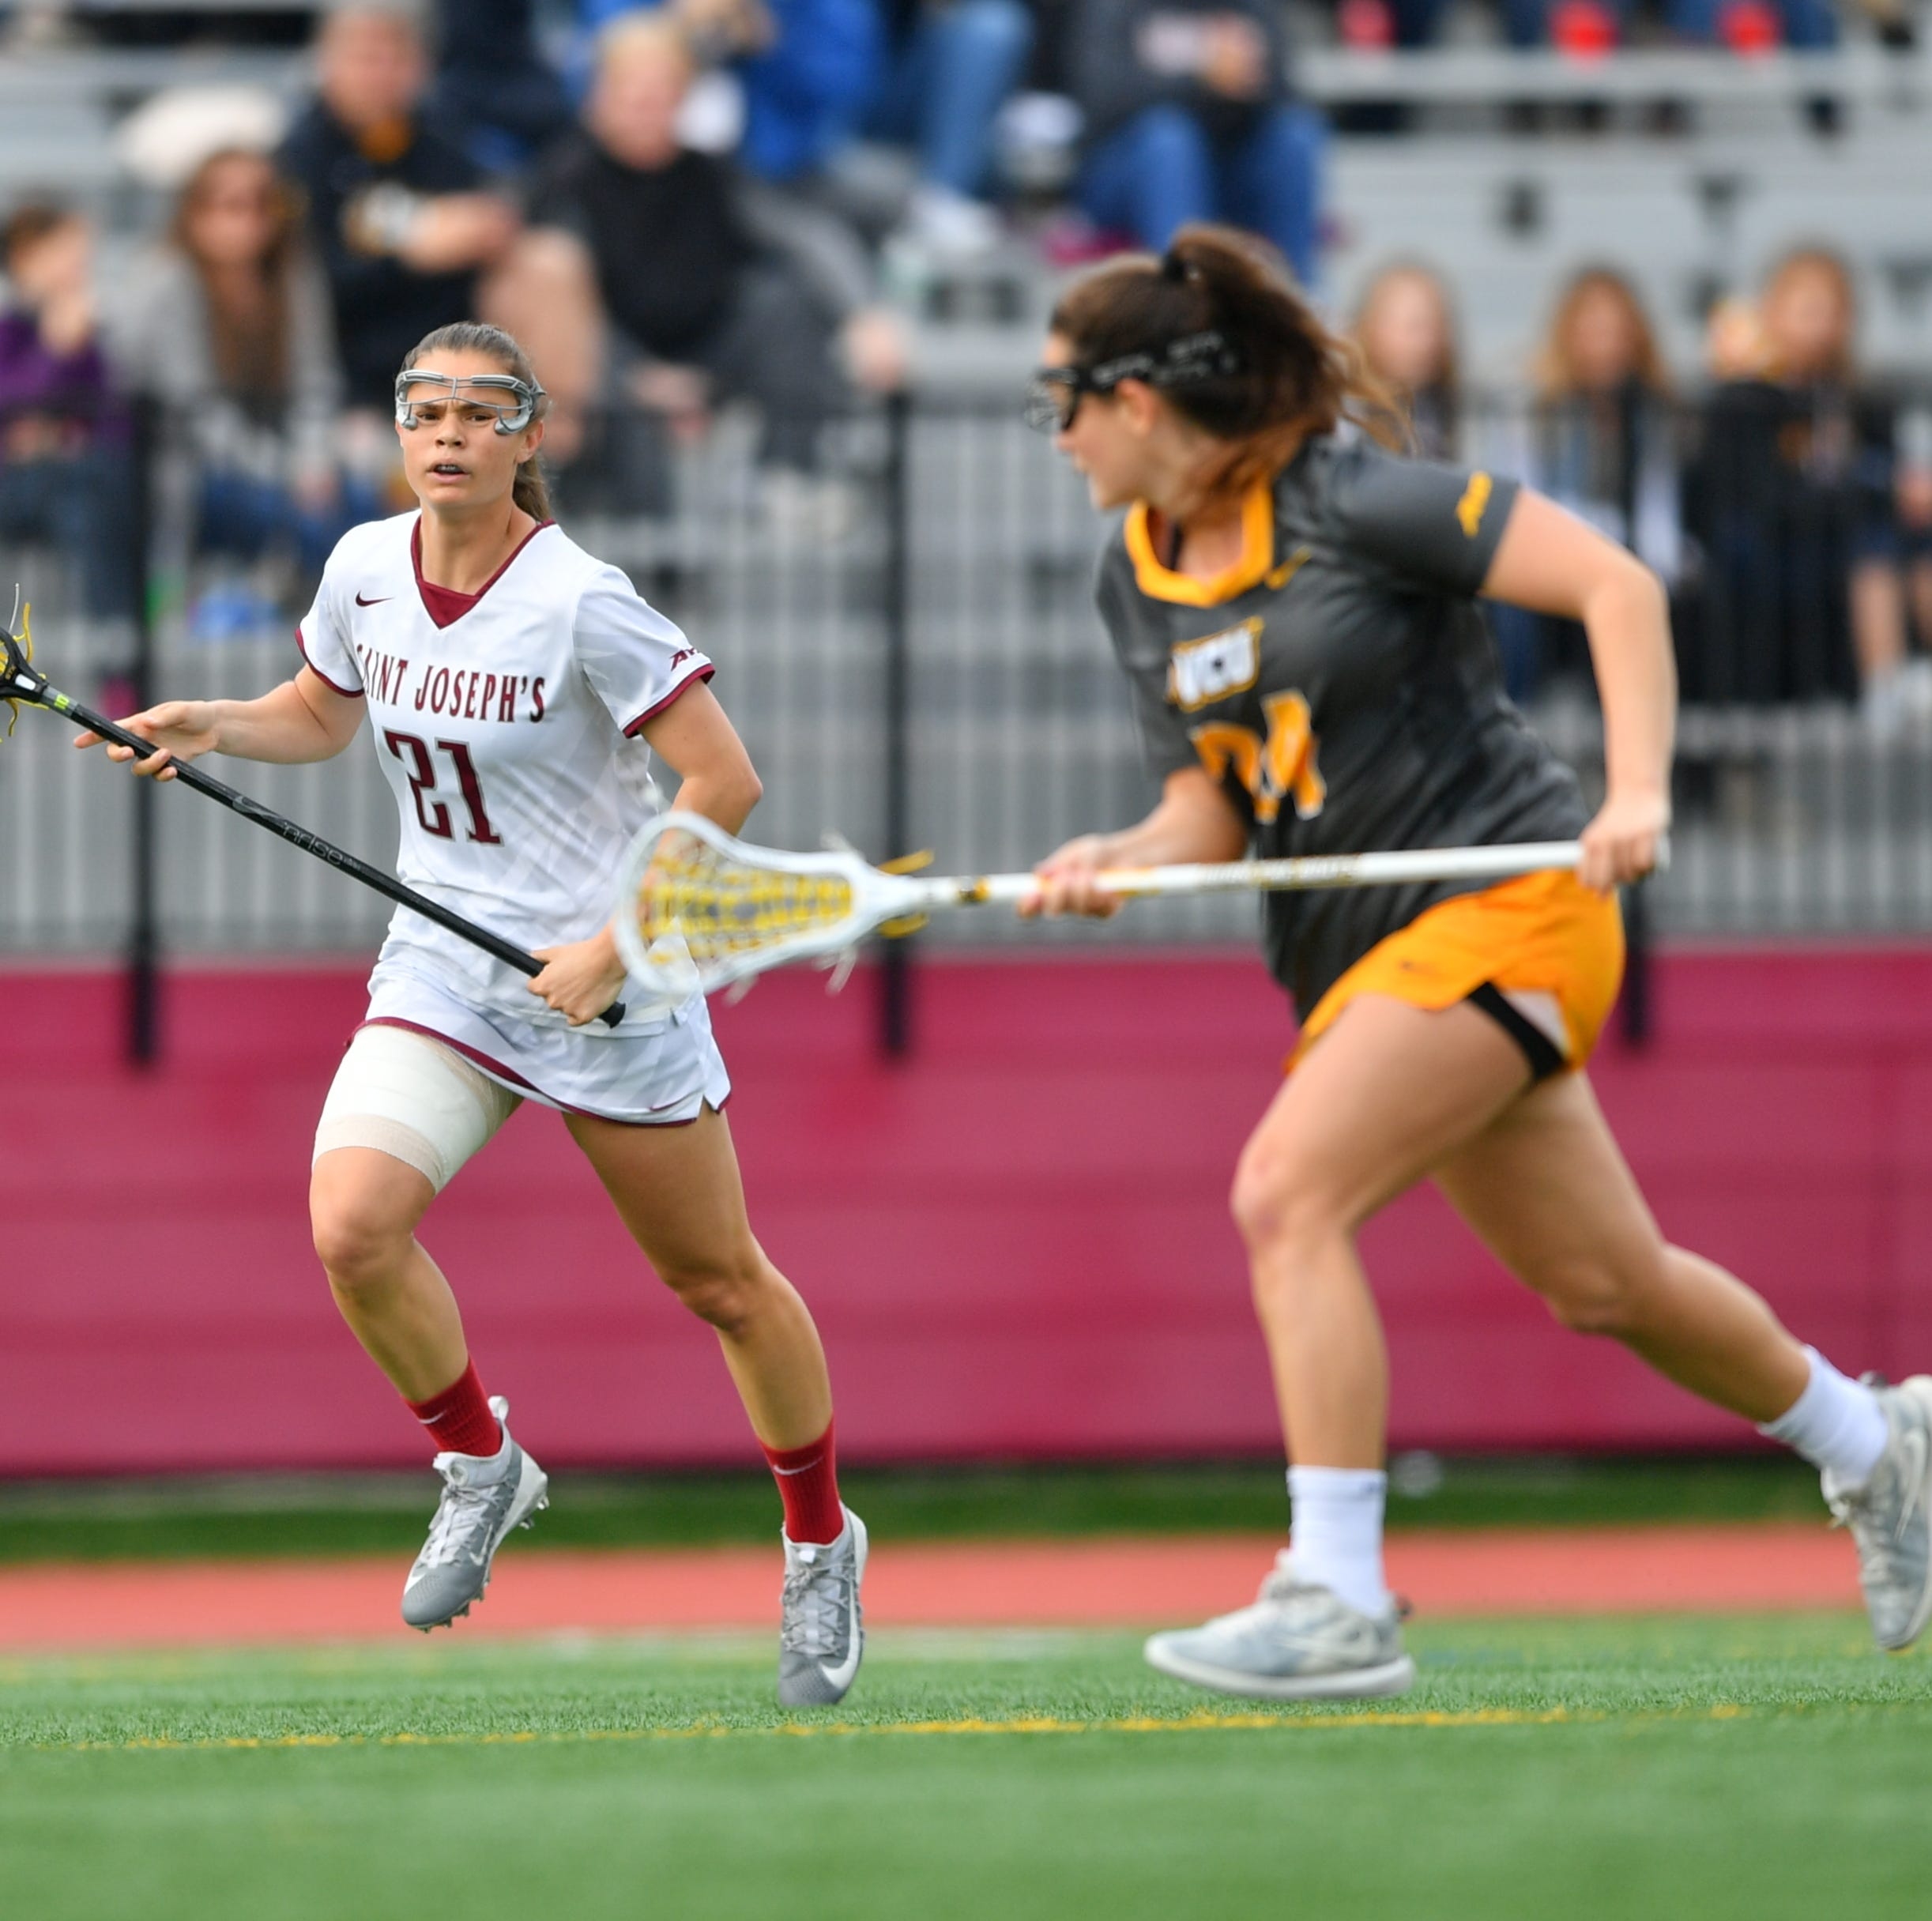 Stephen Decatur grad Ally Beck breaking records with Saint Joseph's women's lacrosse